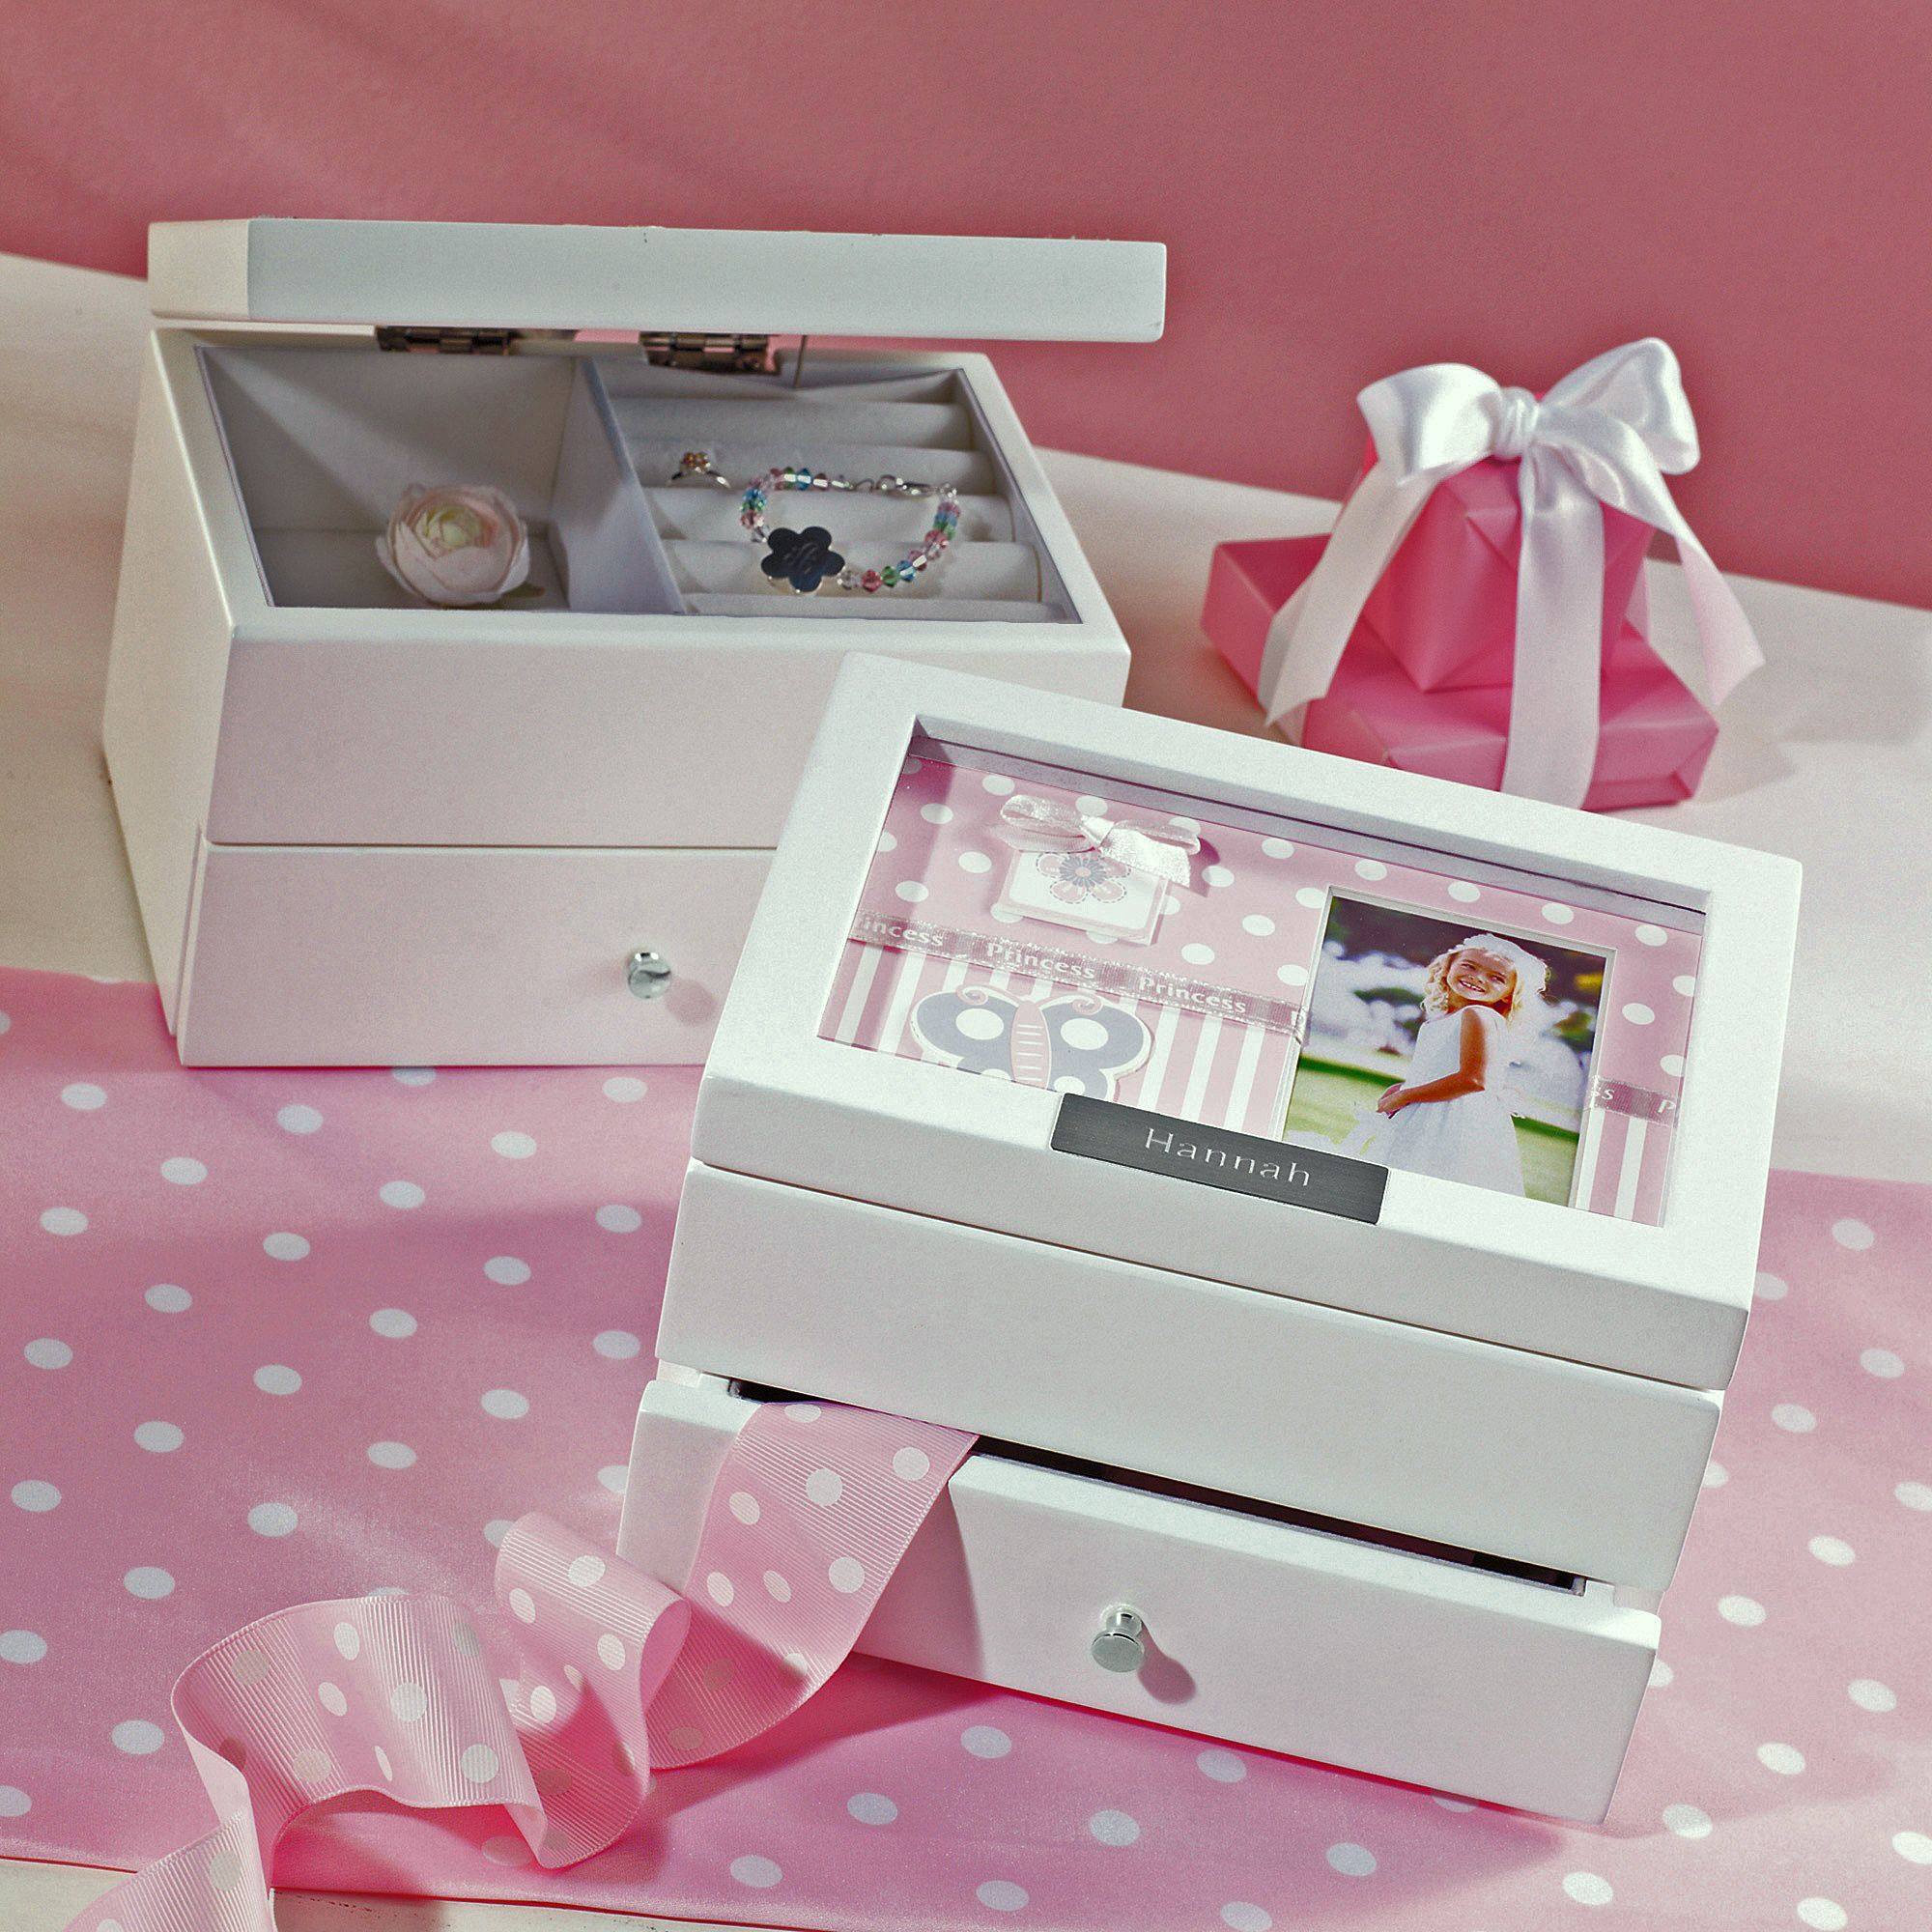 Best Wedding Gift For Girl: Personalized Photo Jewelry Box For Flower Girl